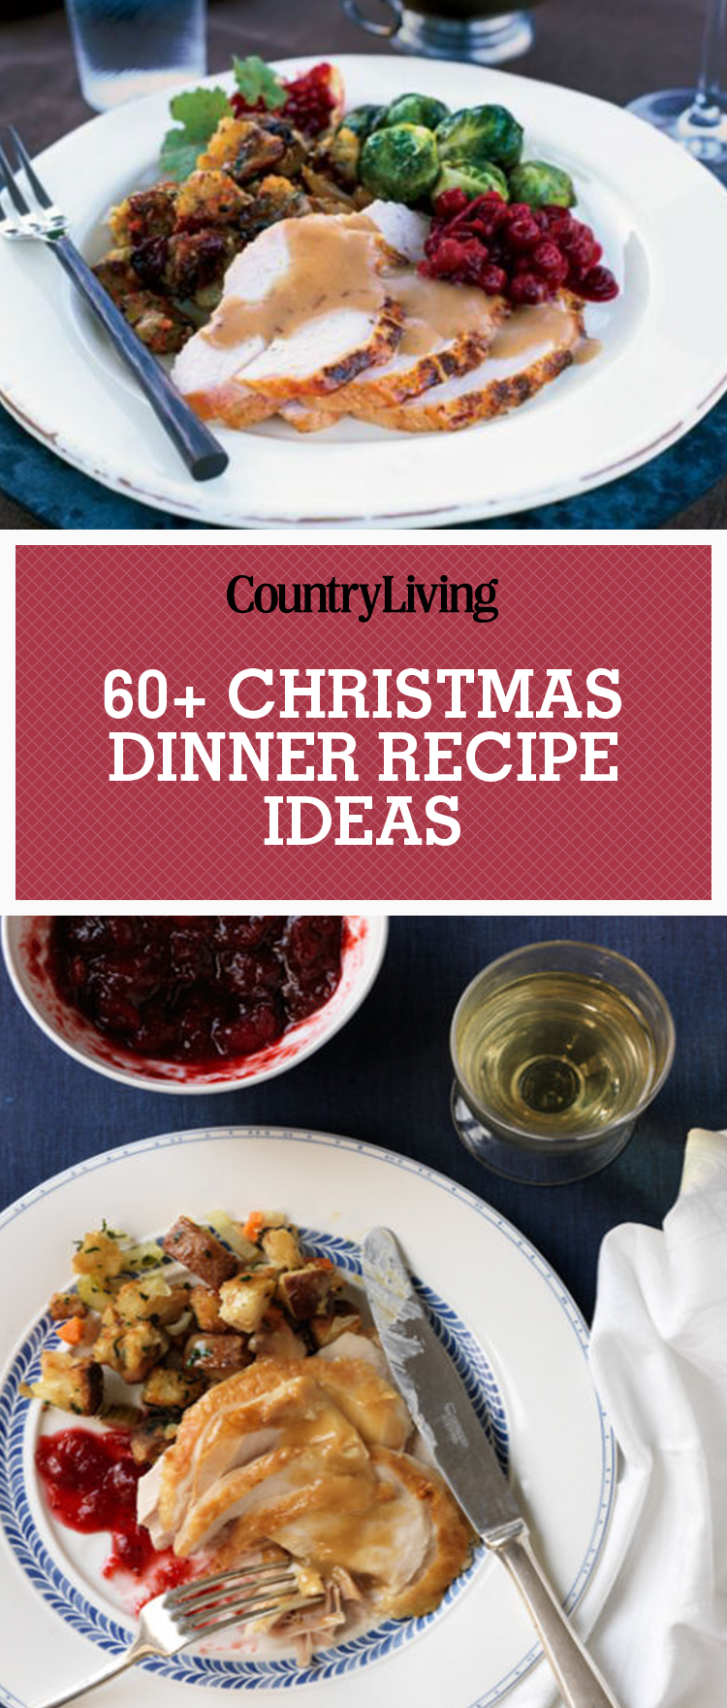 70+ Easy Christmas Dinner Ideas - Best Holiday Meal Recipes